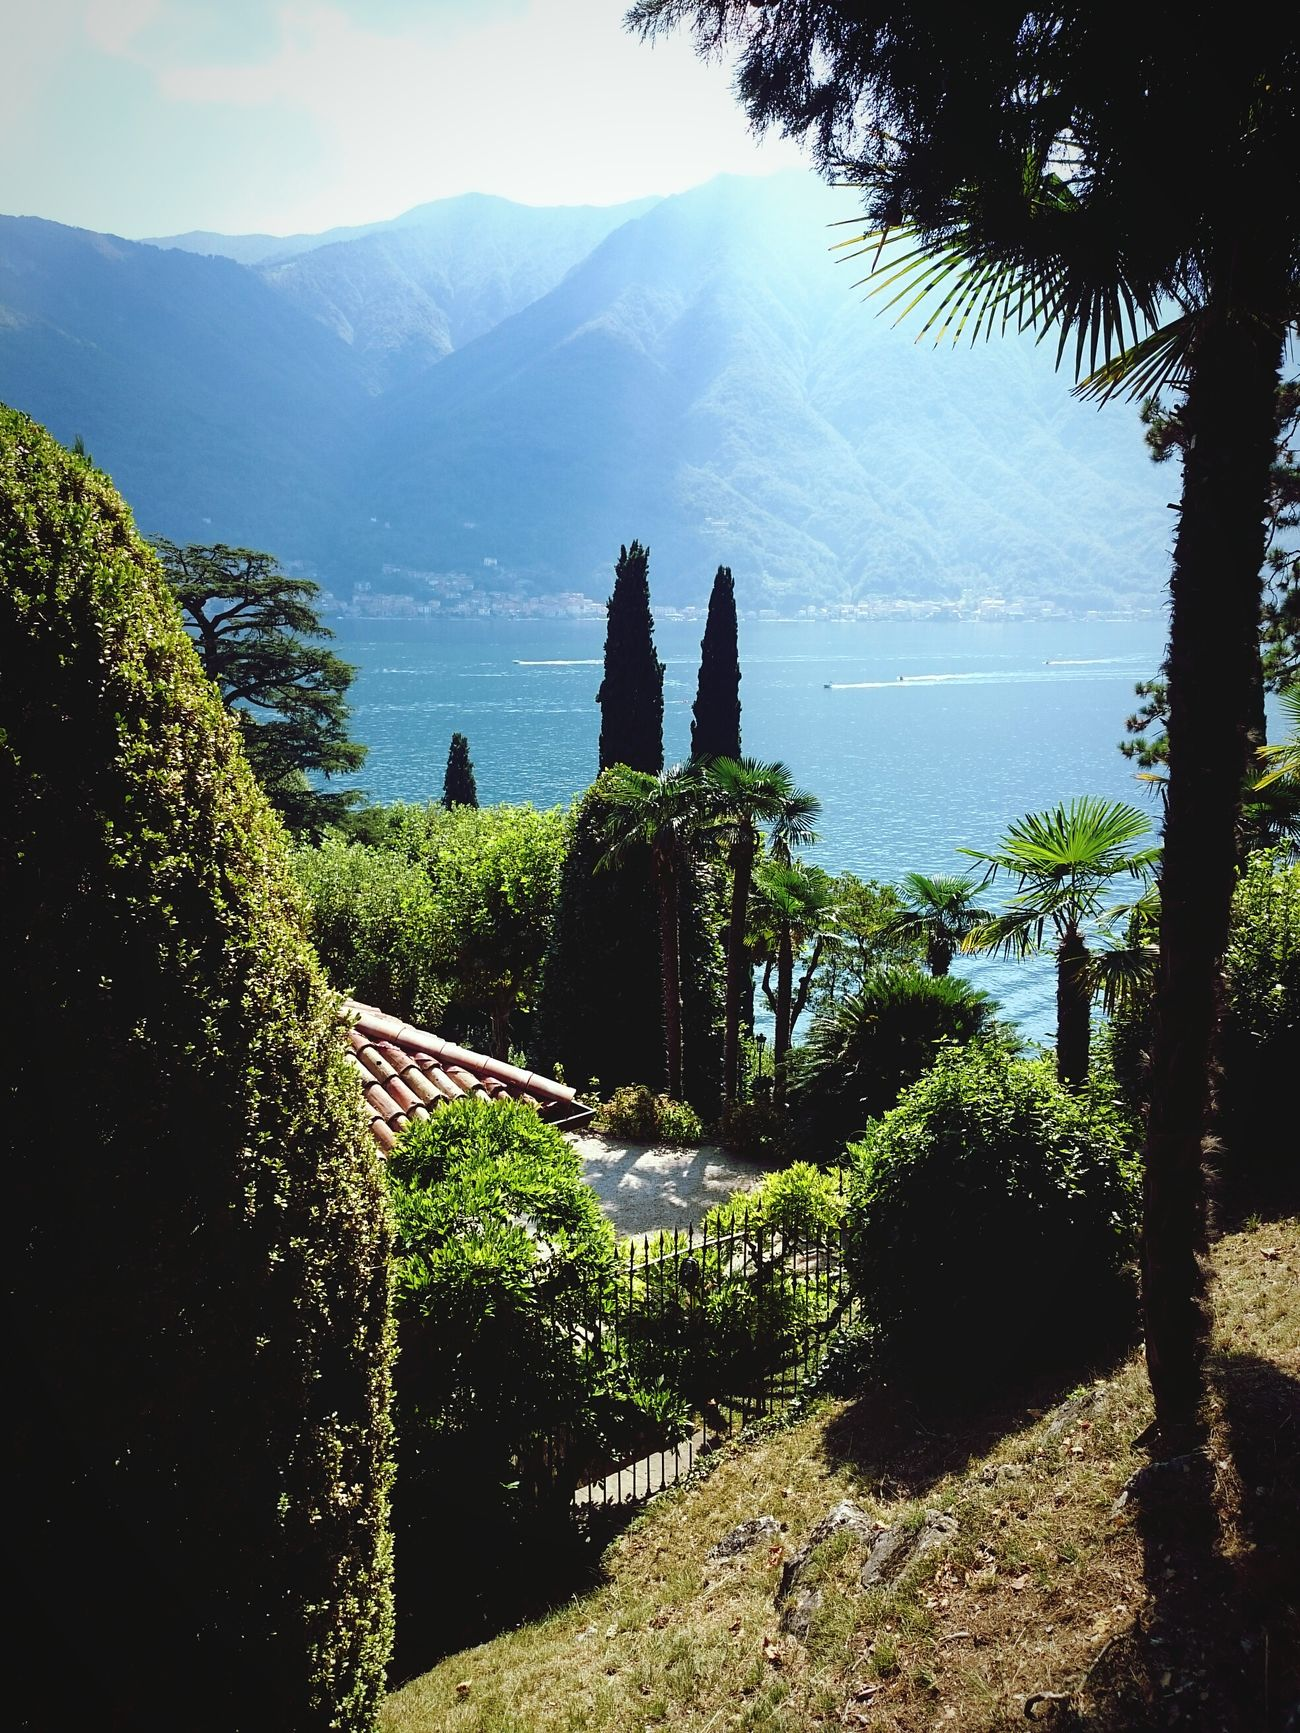 Lake View Lakecomo Villadelbalbianello Enjoying Life Italy🇮🇹 Italy Holidays Summer ☀ Europe Trip